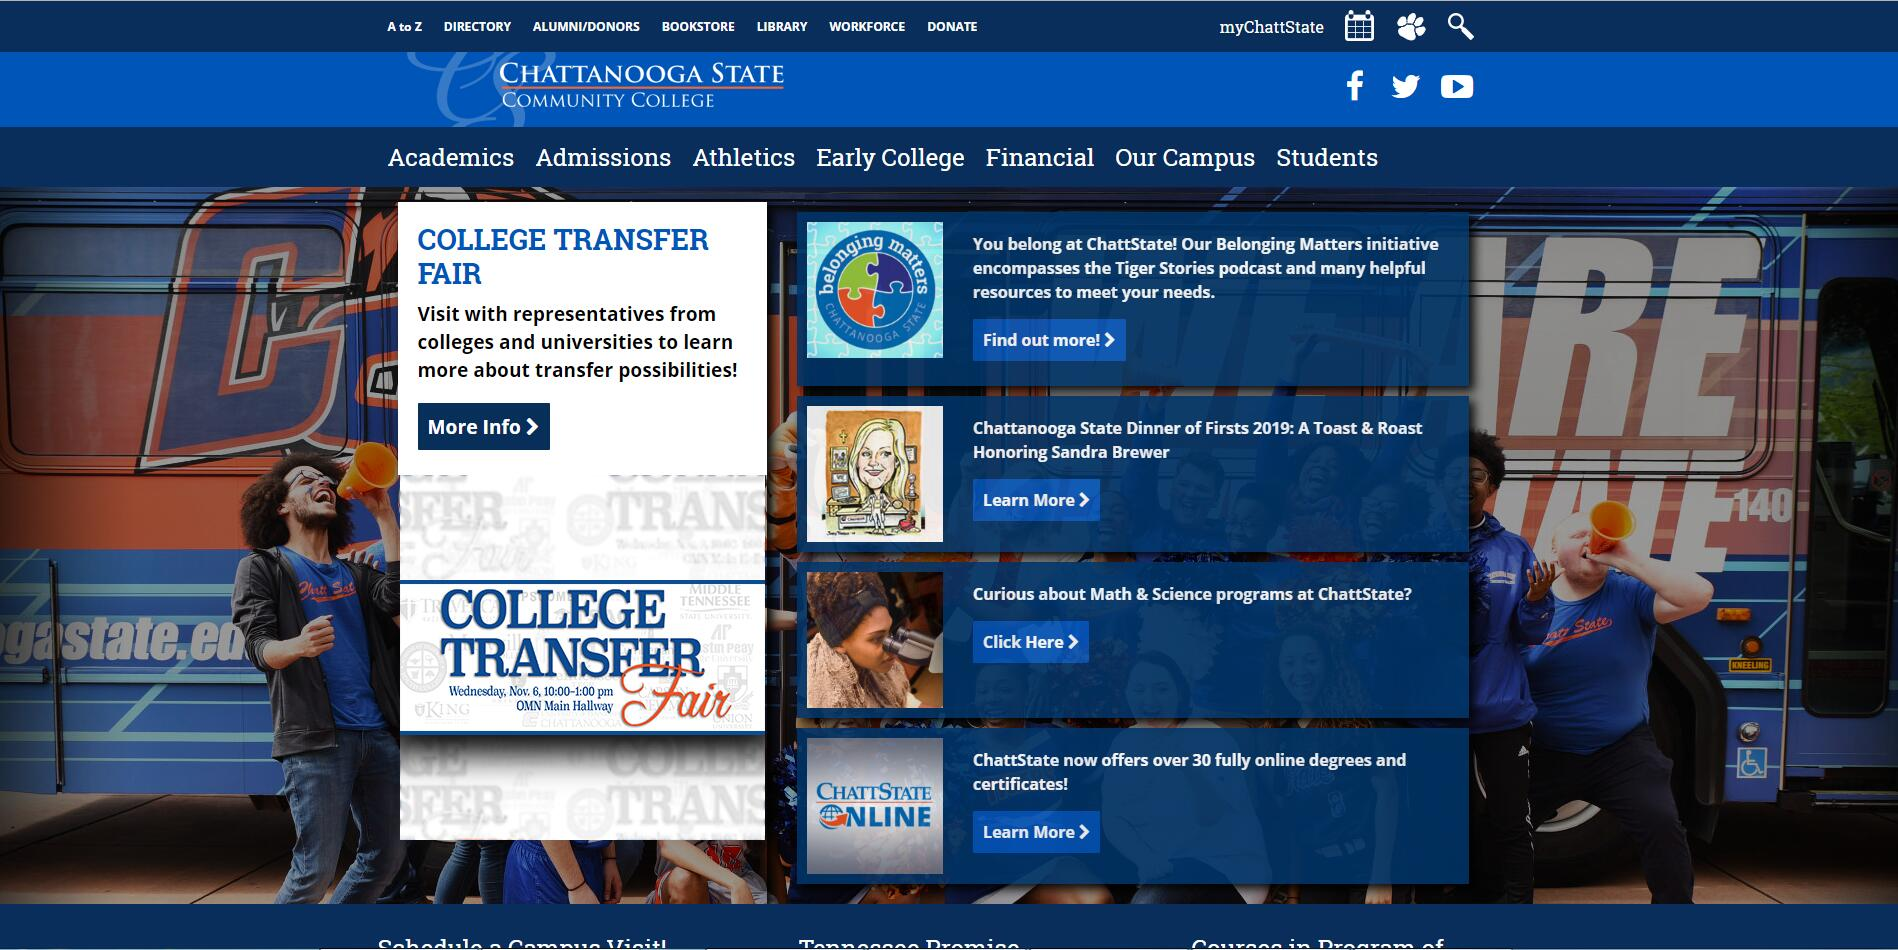 Chattanooga State Technical Community College